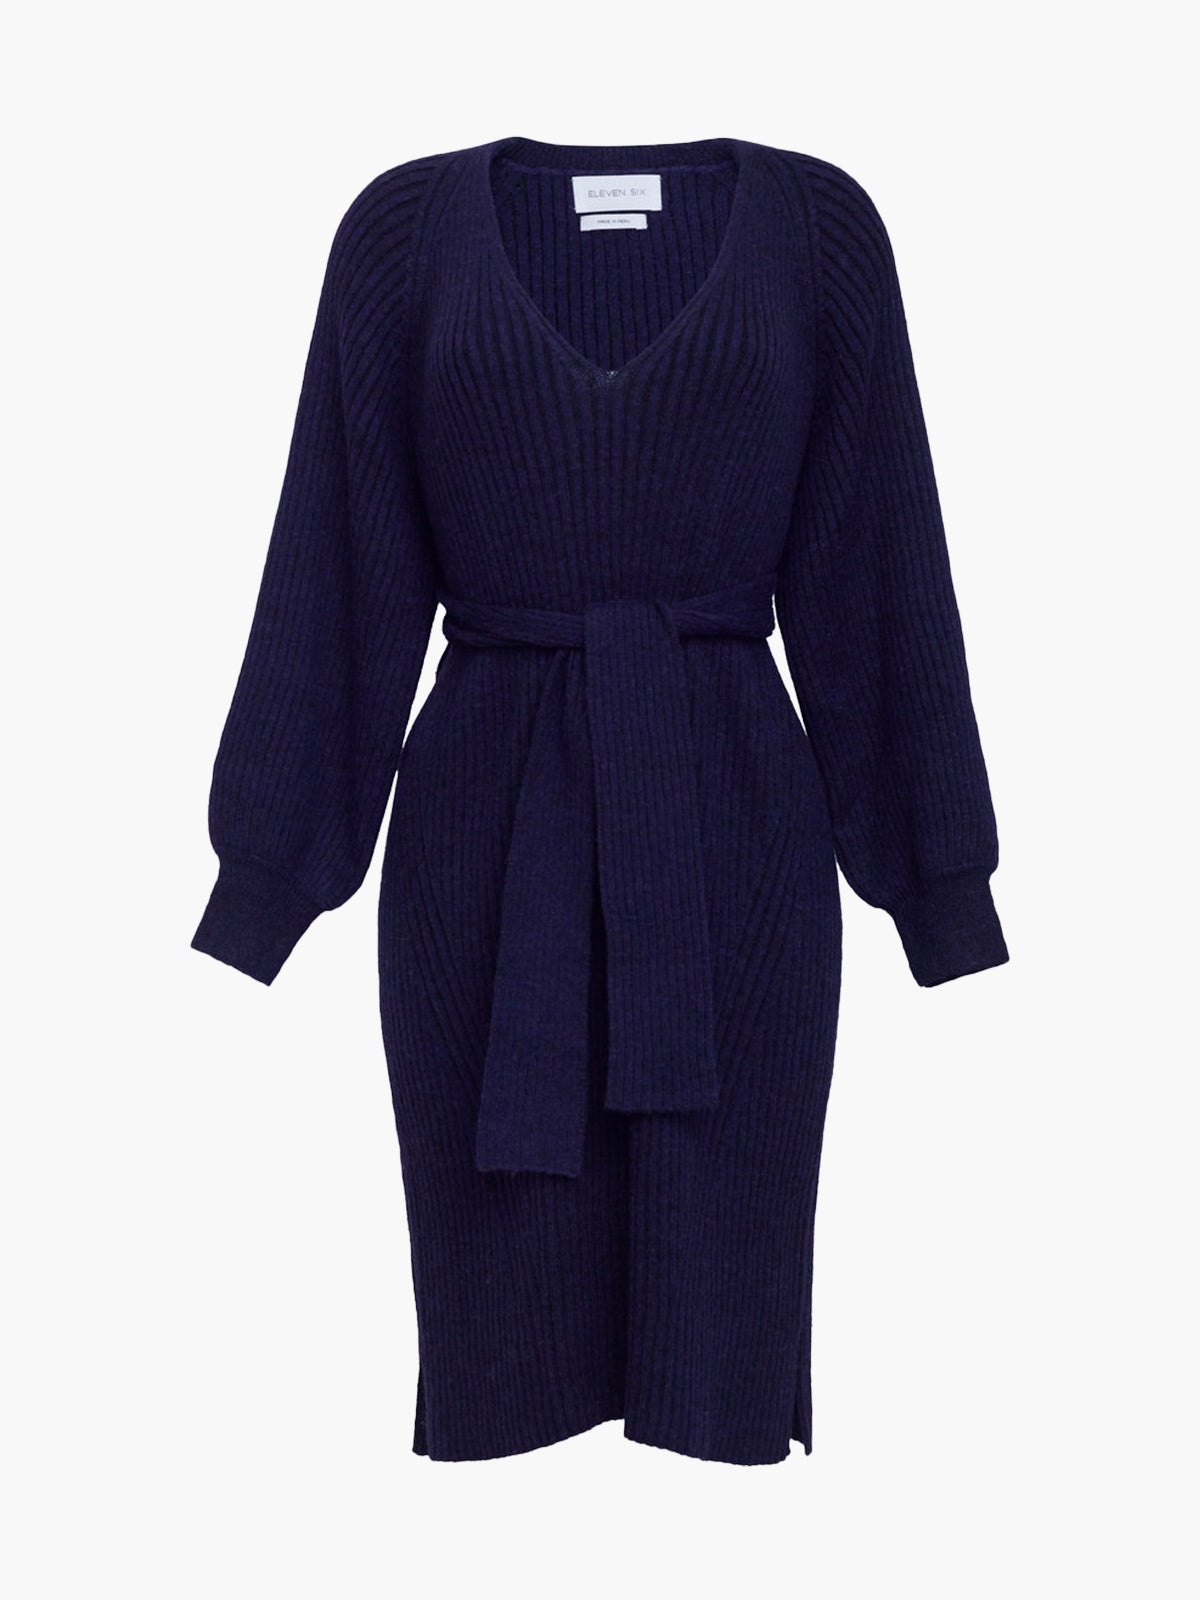 Ines Dress | Navy/Black Combo Ines Dress | Navy/Black Combo